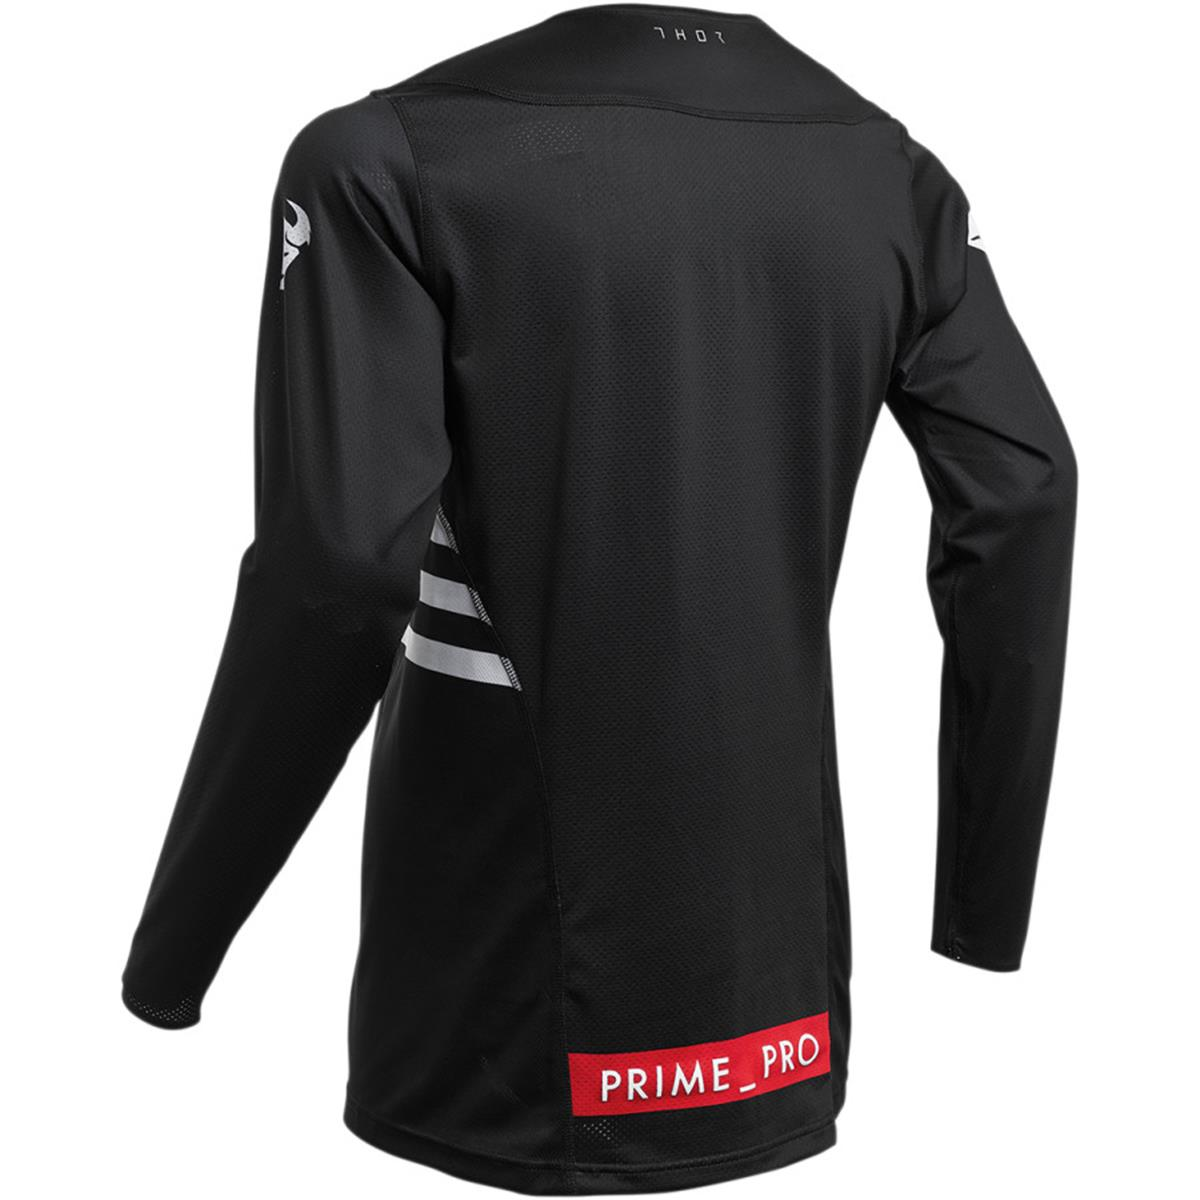 Thor Prime Pro Baddy Jersey